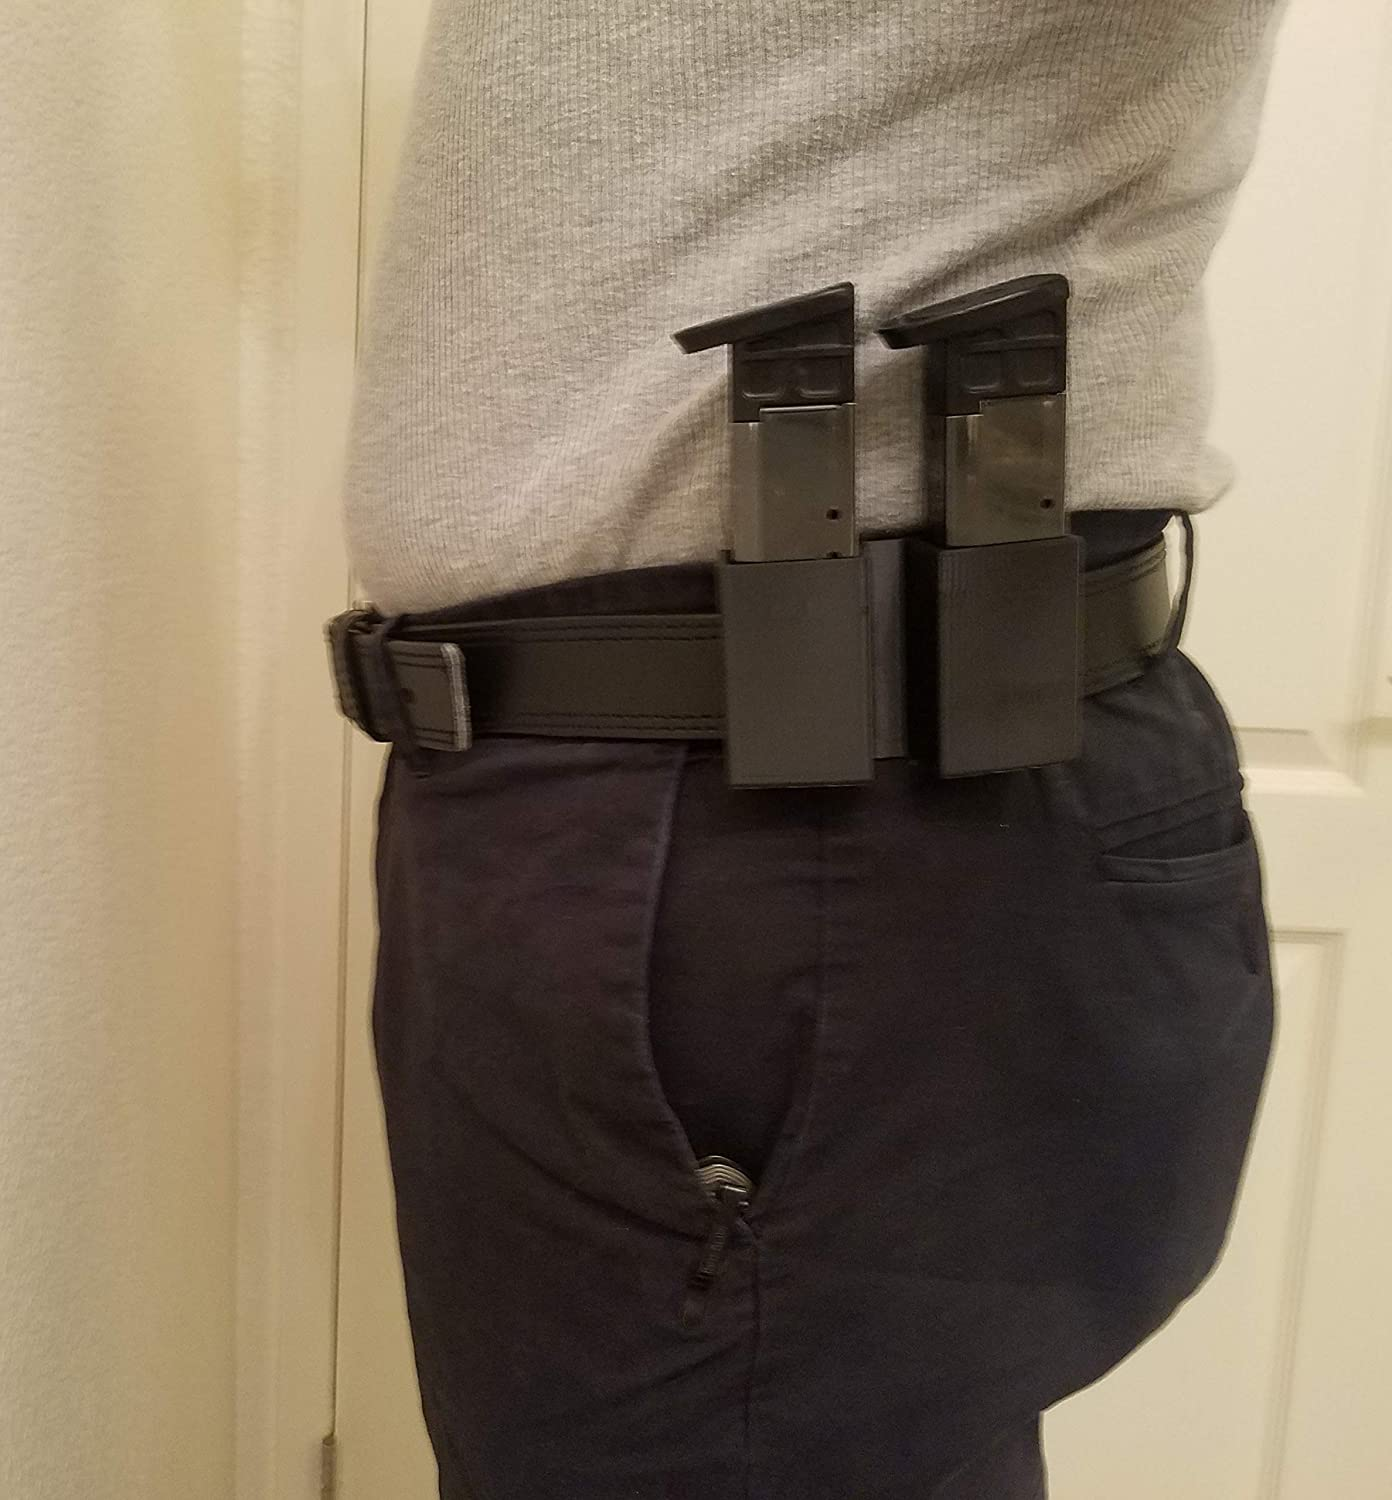 2 Mag Pouch fits S & W, M&P, 9mm & 40 Cal.(Double Stack). Magazines. (Polymer) 81x72B3HGIyL